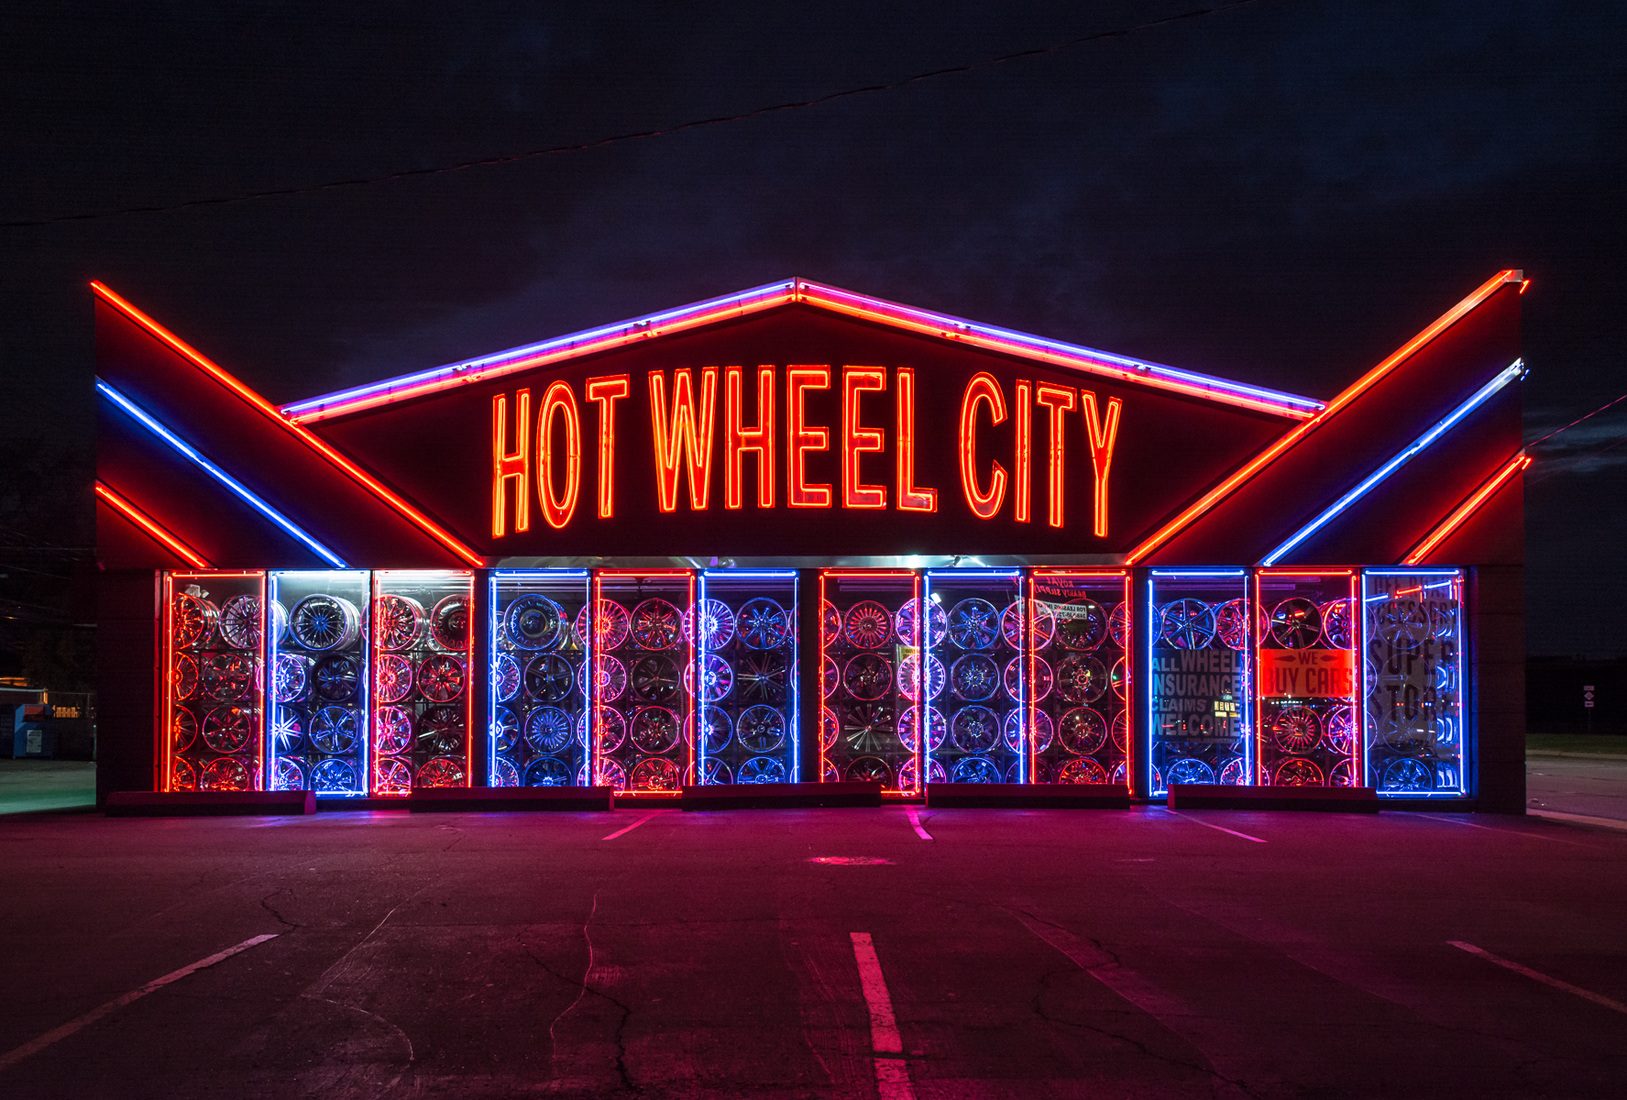 Neon Hot Wheel City No. 1a